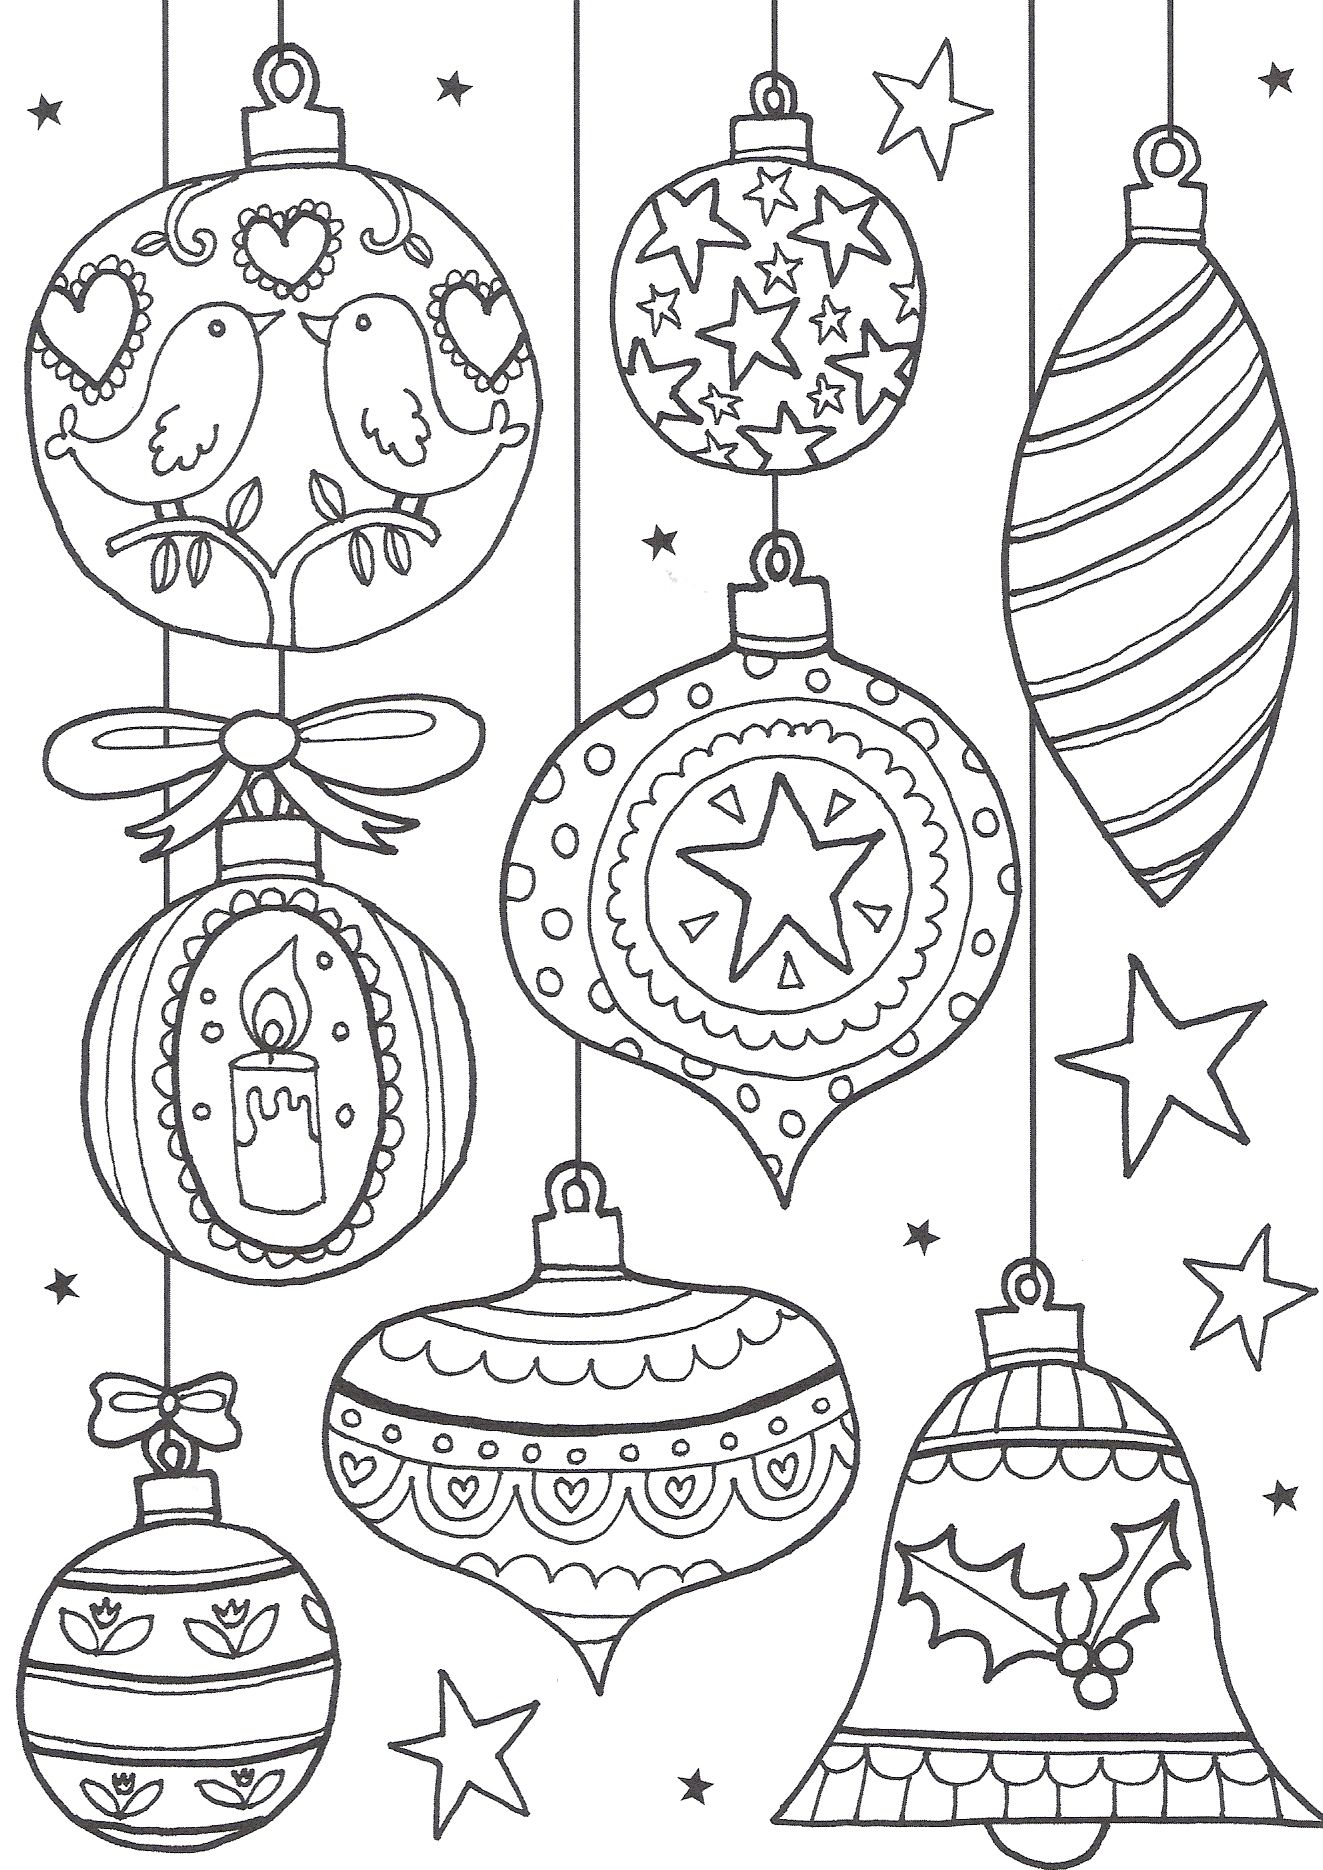 Christmas Coloring Pages Free With Colouring For Adults The Ultimate Roundup